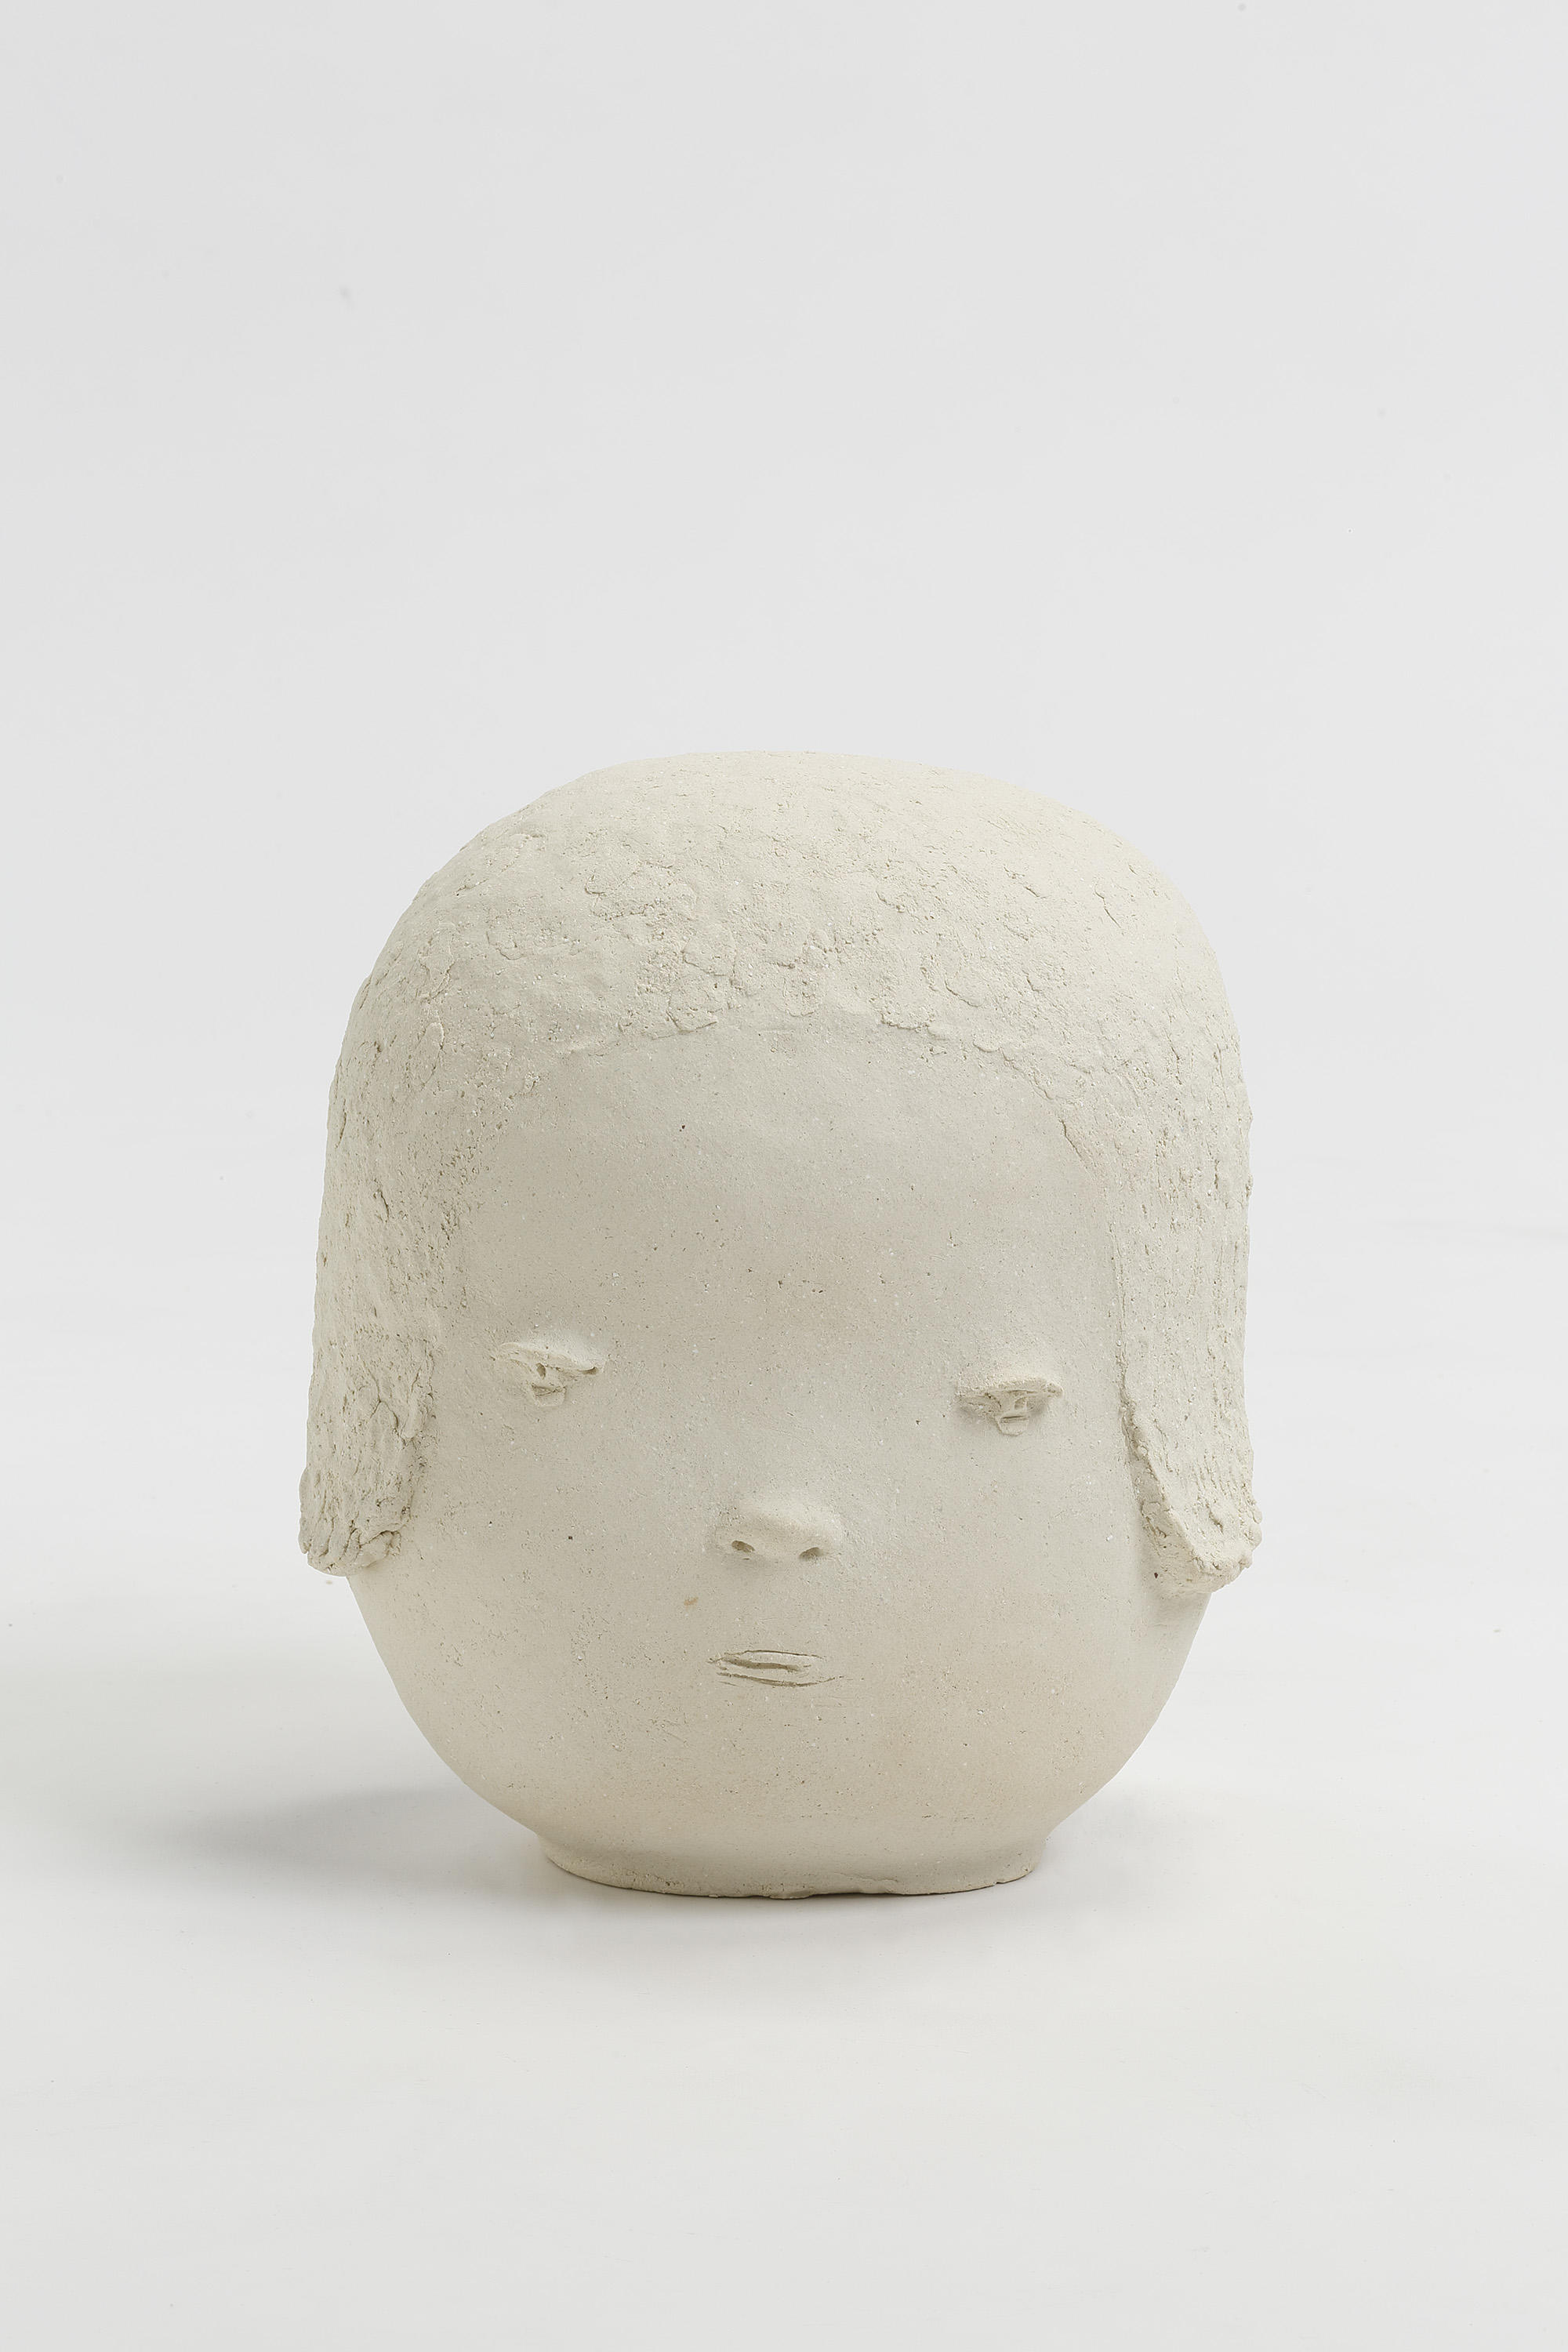 "Yoshitomo Nara, Head 3, 2018,  ceramic,  12-7/16"" x 10-3/4"" x 8-7/8"" (31.6 cm x 27.3 cm x 22.5 cm),  SCULPTURE,  No. 68821, view 1,  Alt # C-2018-024,  Format of original photography: hi-res TIFF"